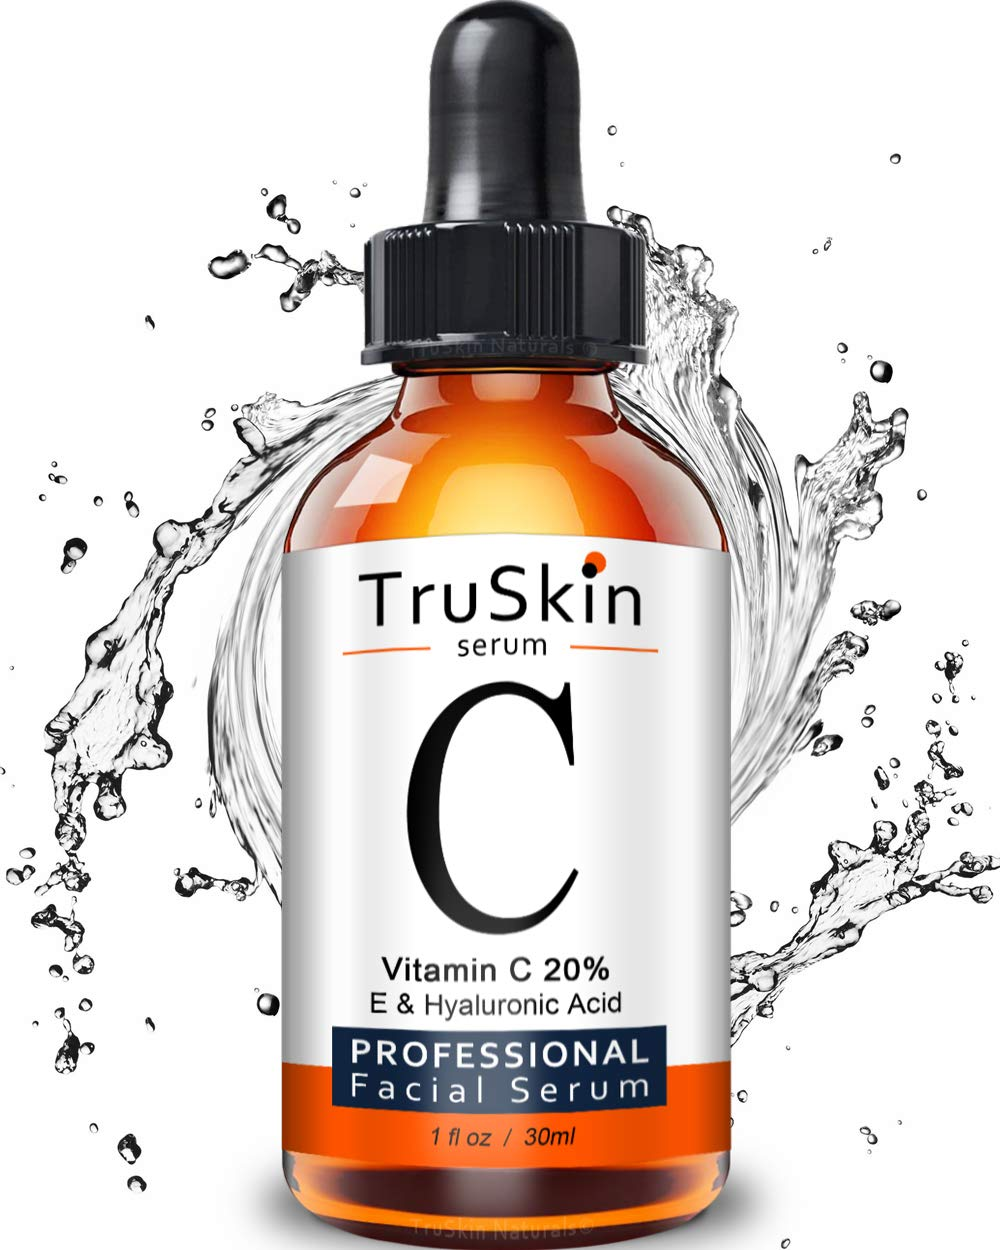 TruSkin Naturals Vitamin C Serum for Face, Topical Facial Serum with Hyaluronic Acid & Vitamin